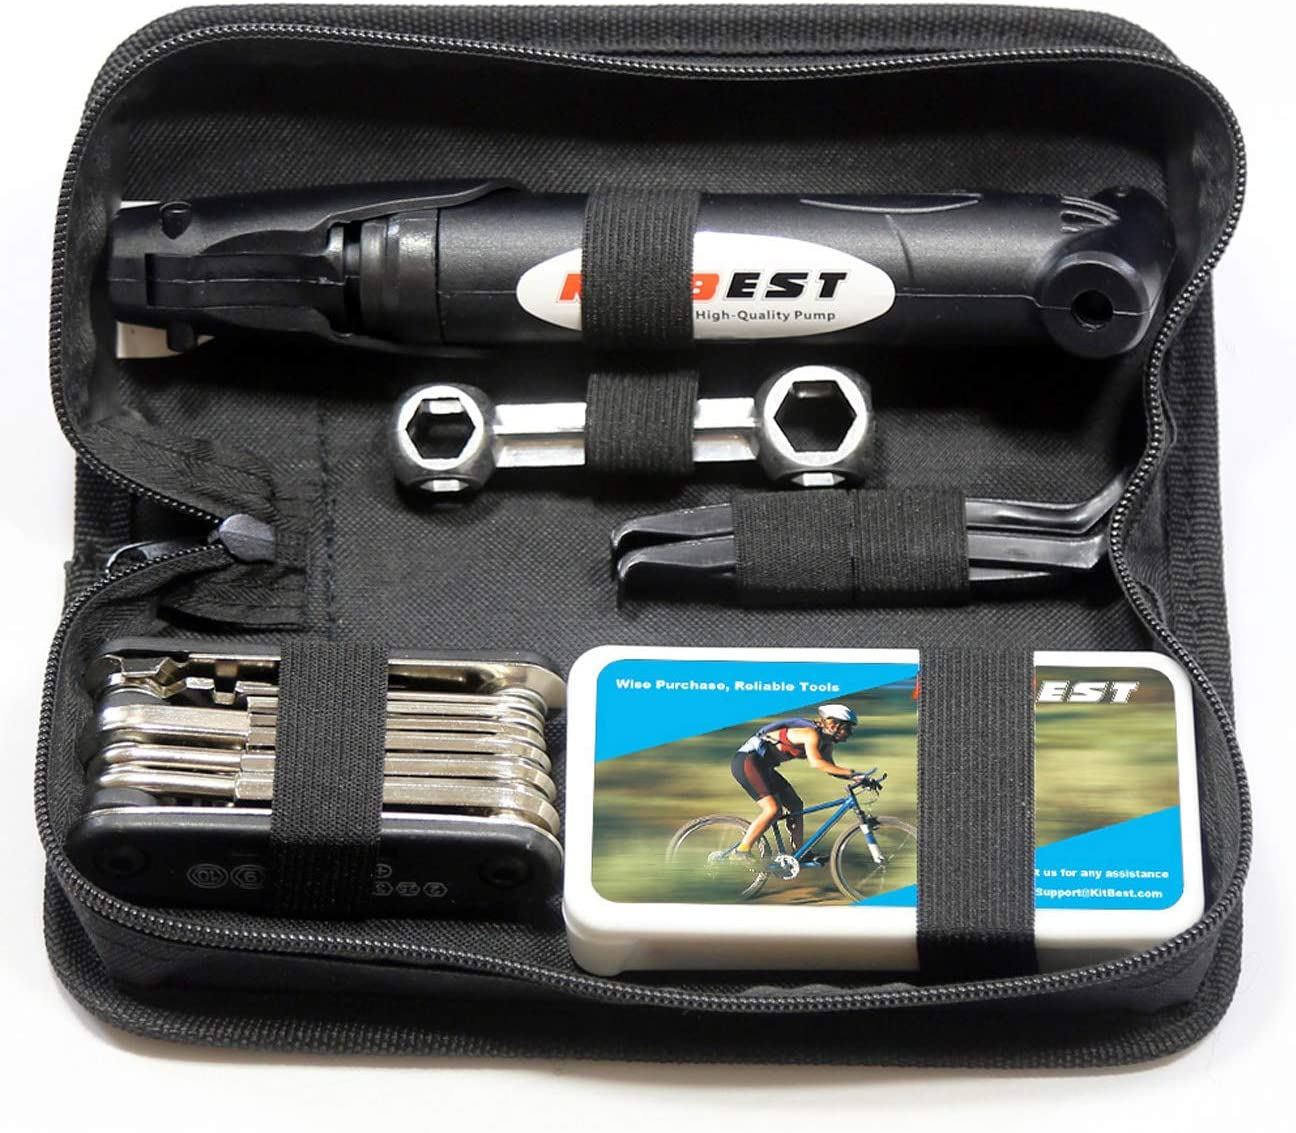 Kitbest Bike Repair Tool Kit. Bicycle Tire Pump, Tire Puncture Repair Kit, Bike Multi Tool Set, Glueless Tire Patches, Bicycle Tire Lever and Portable Bike Bag. Emergency All in One Bike Tool : Sports & Outdoors